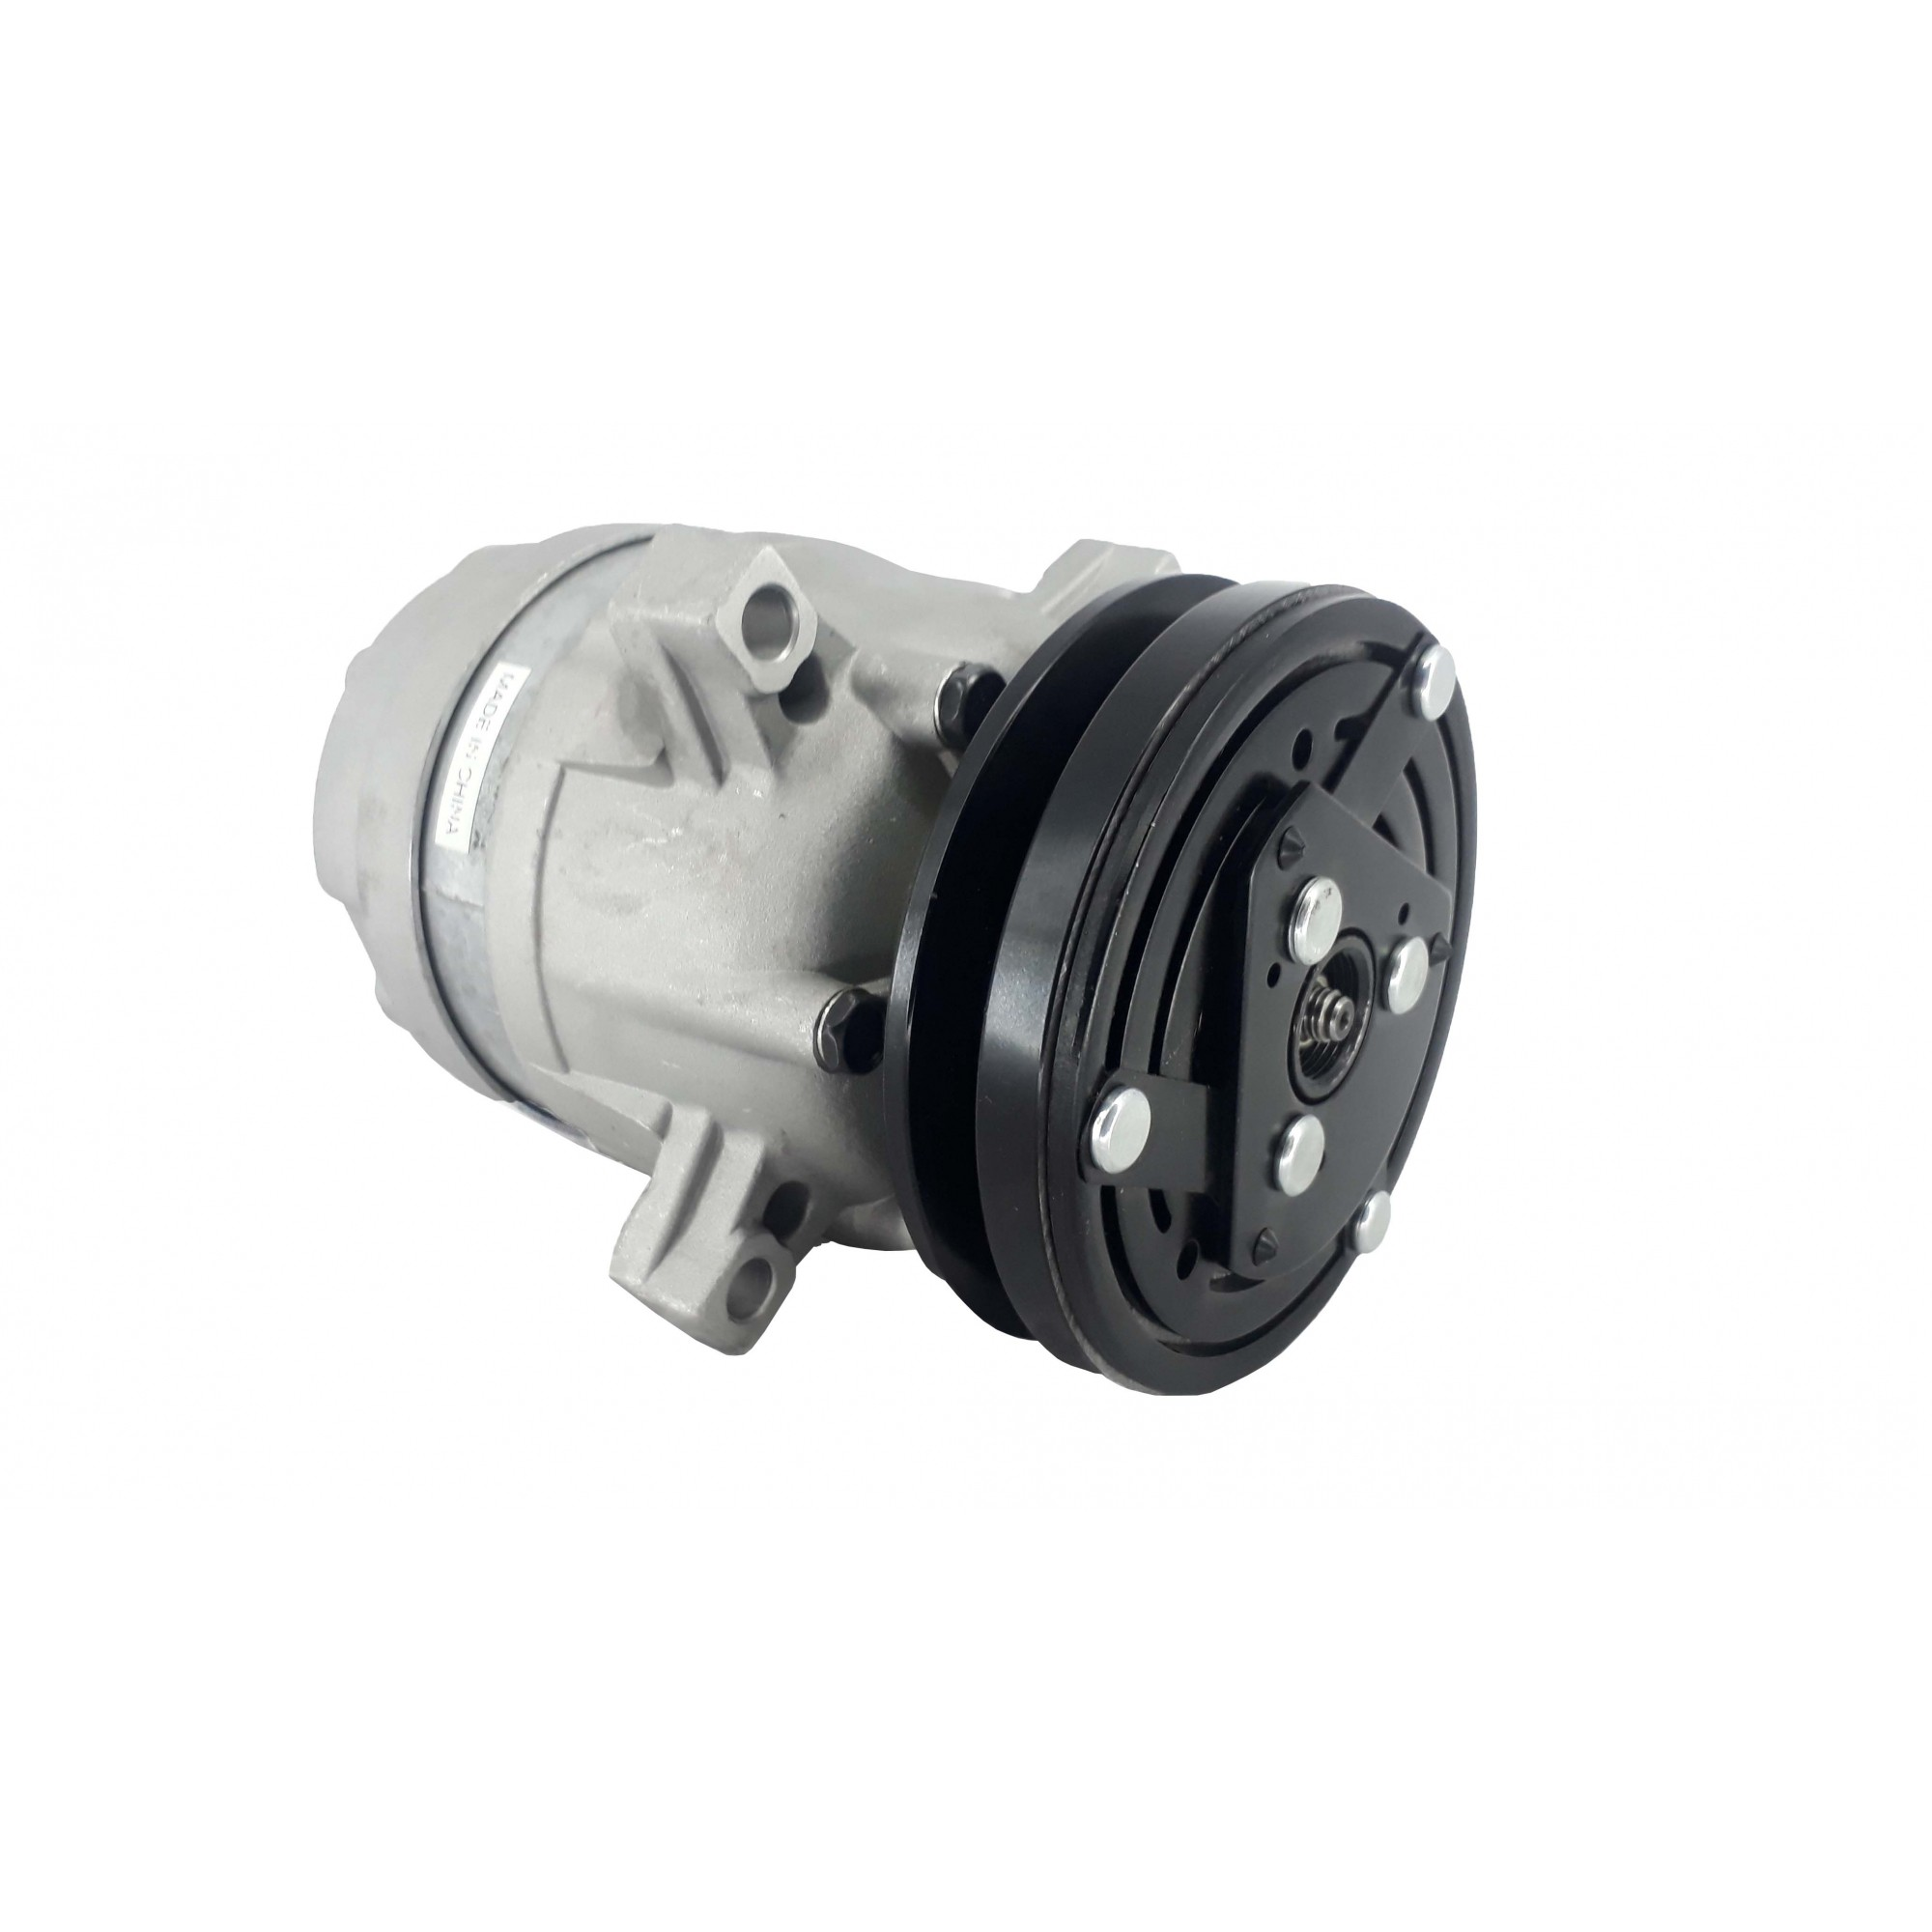 Compressor Harrison V5 S10 2.5 - 2.2 Canal A